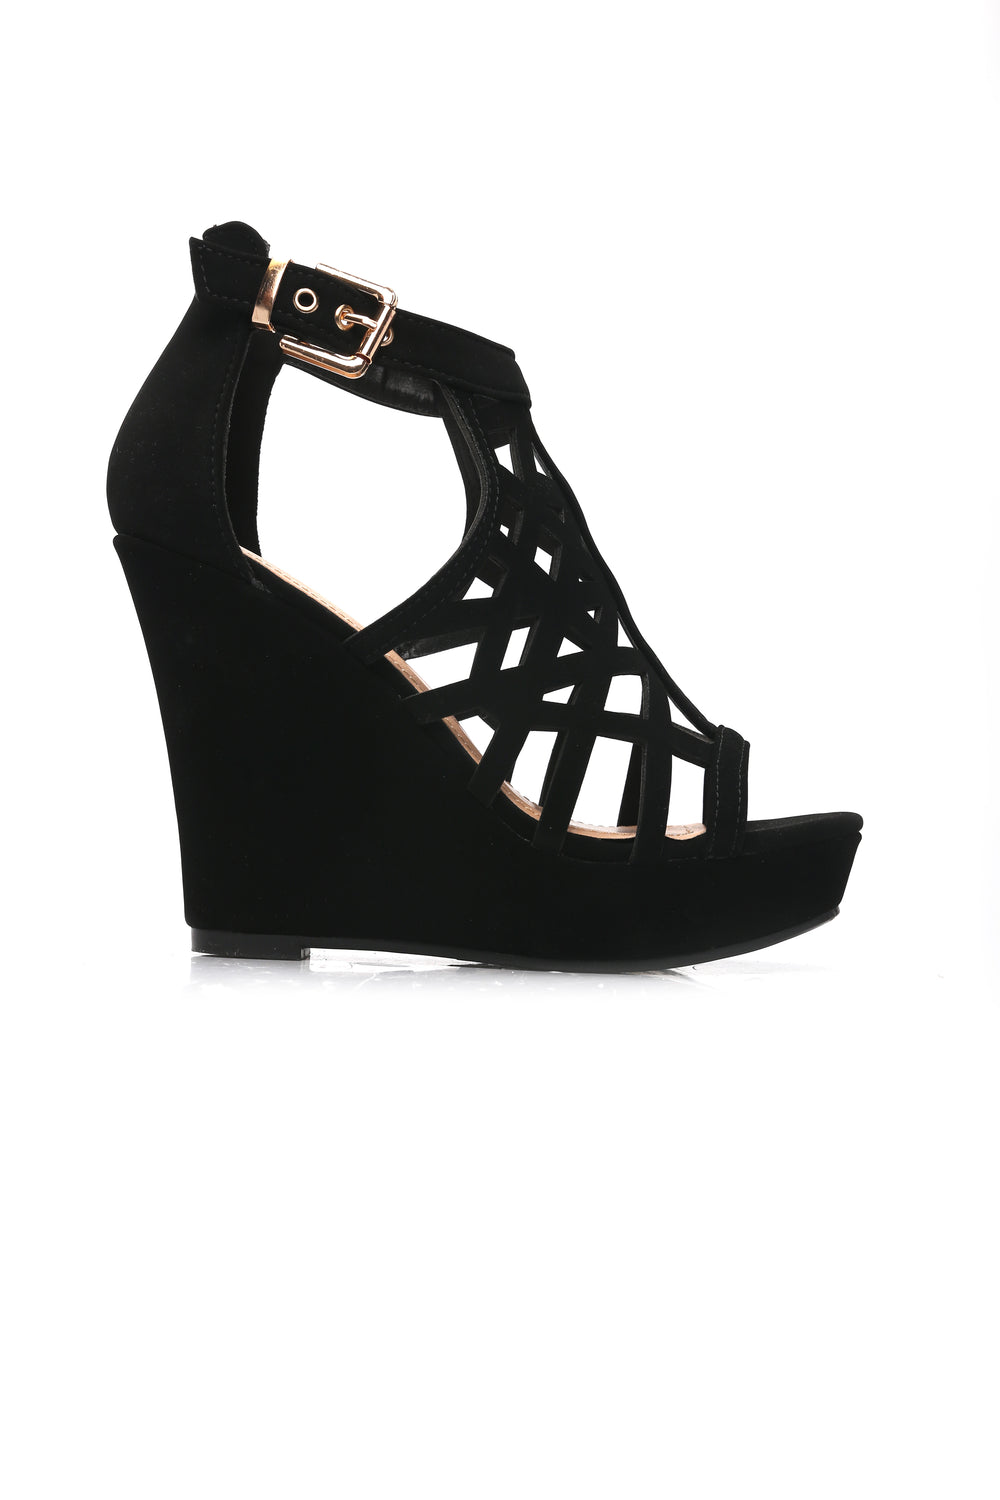 Shadow Heart Wedges - Black